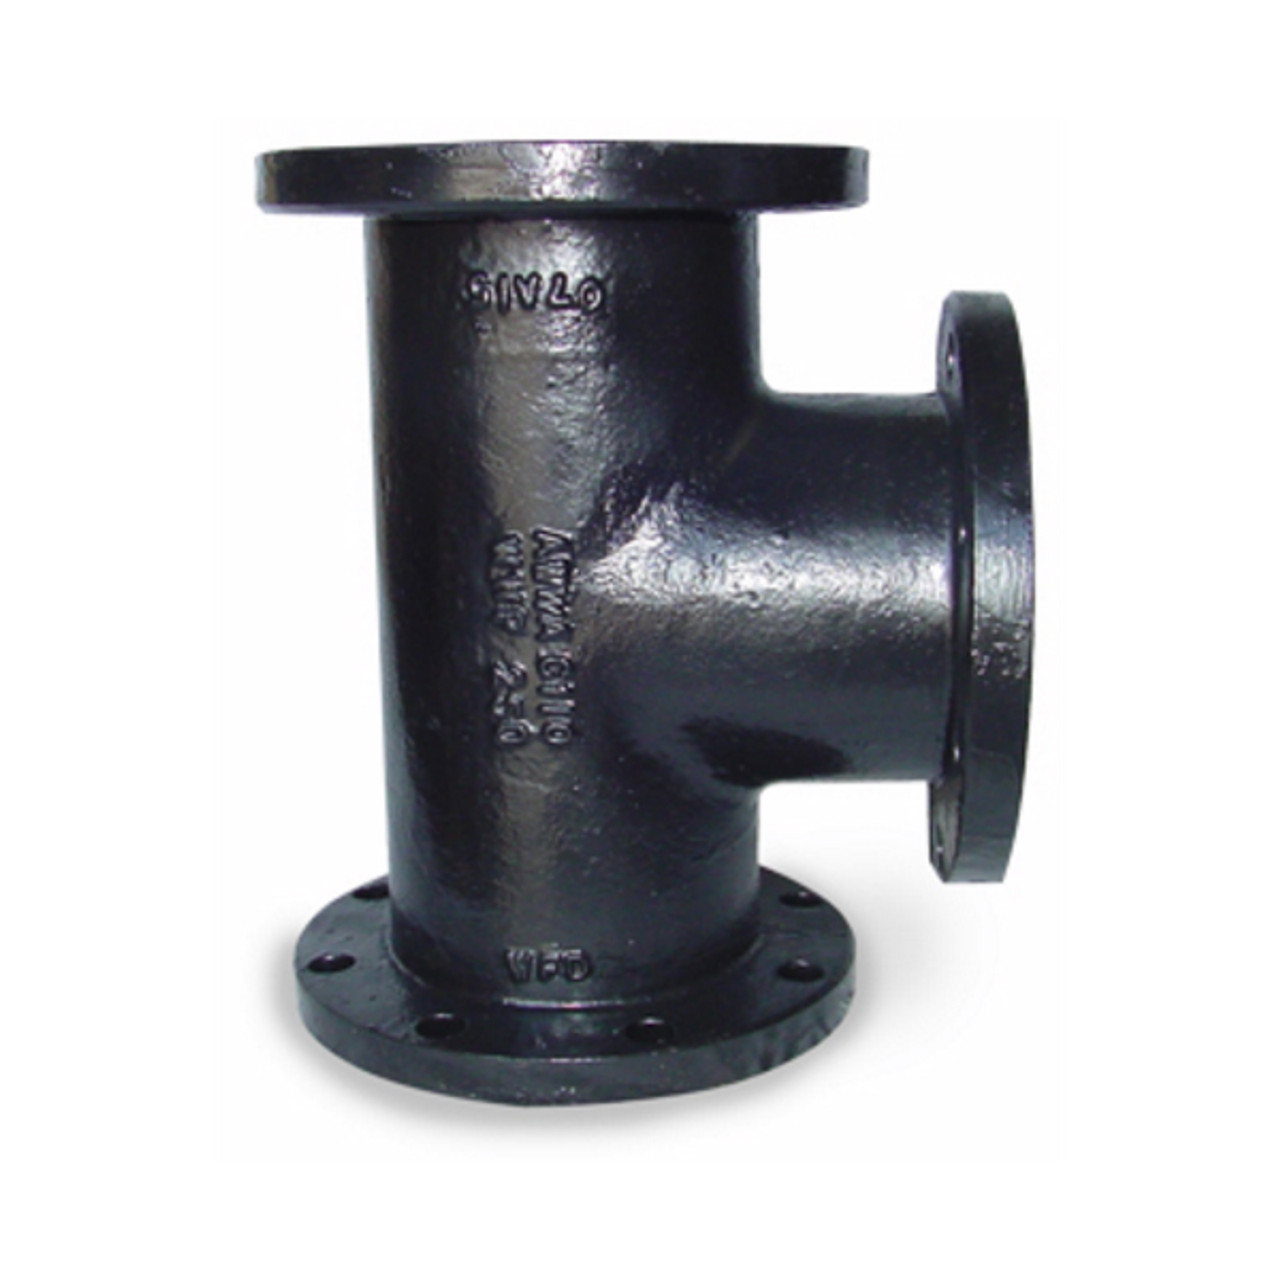 Smith cooper cast iron in tee flanged fittings